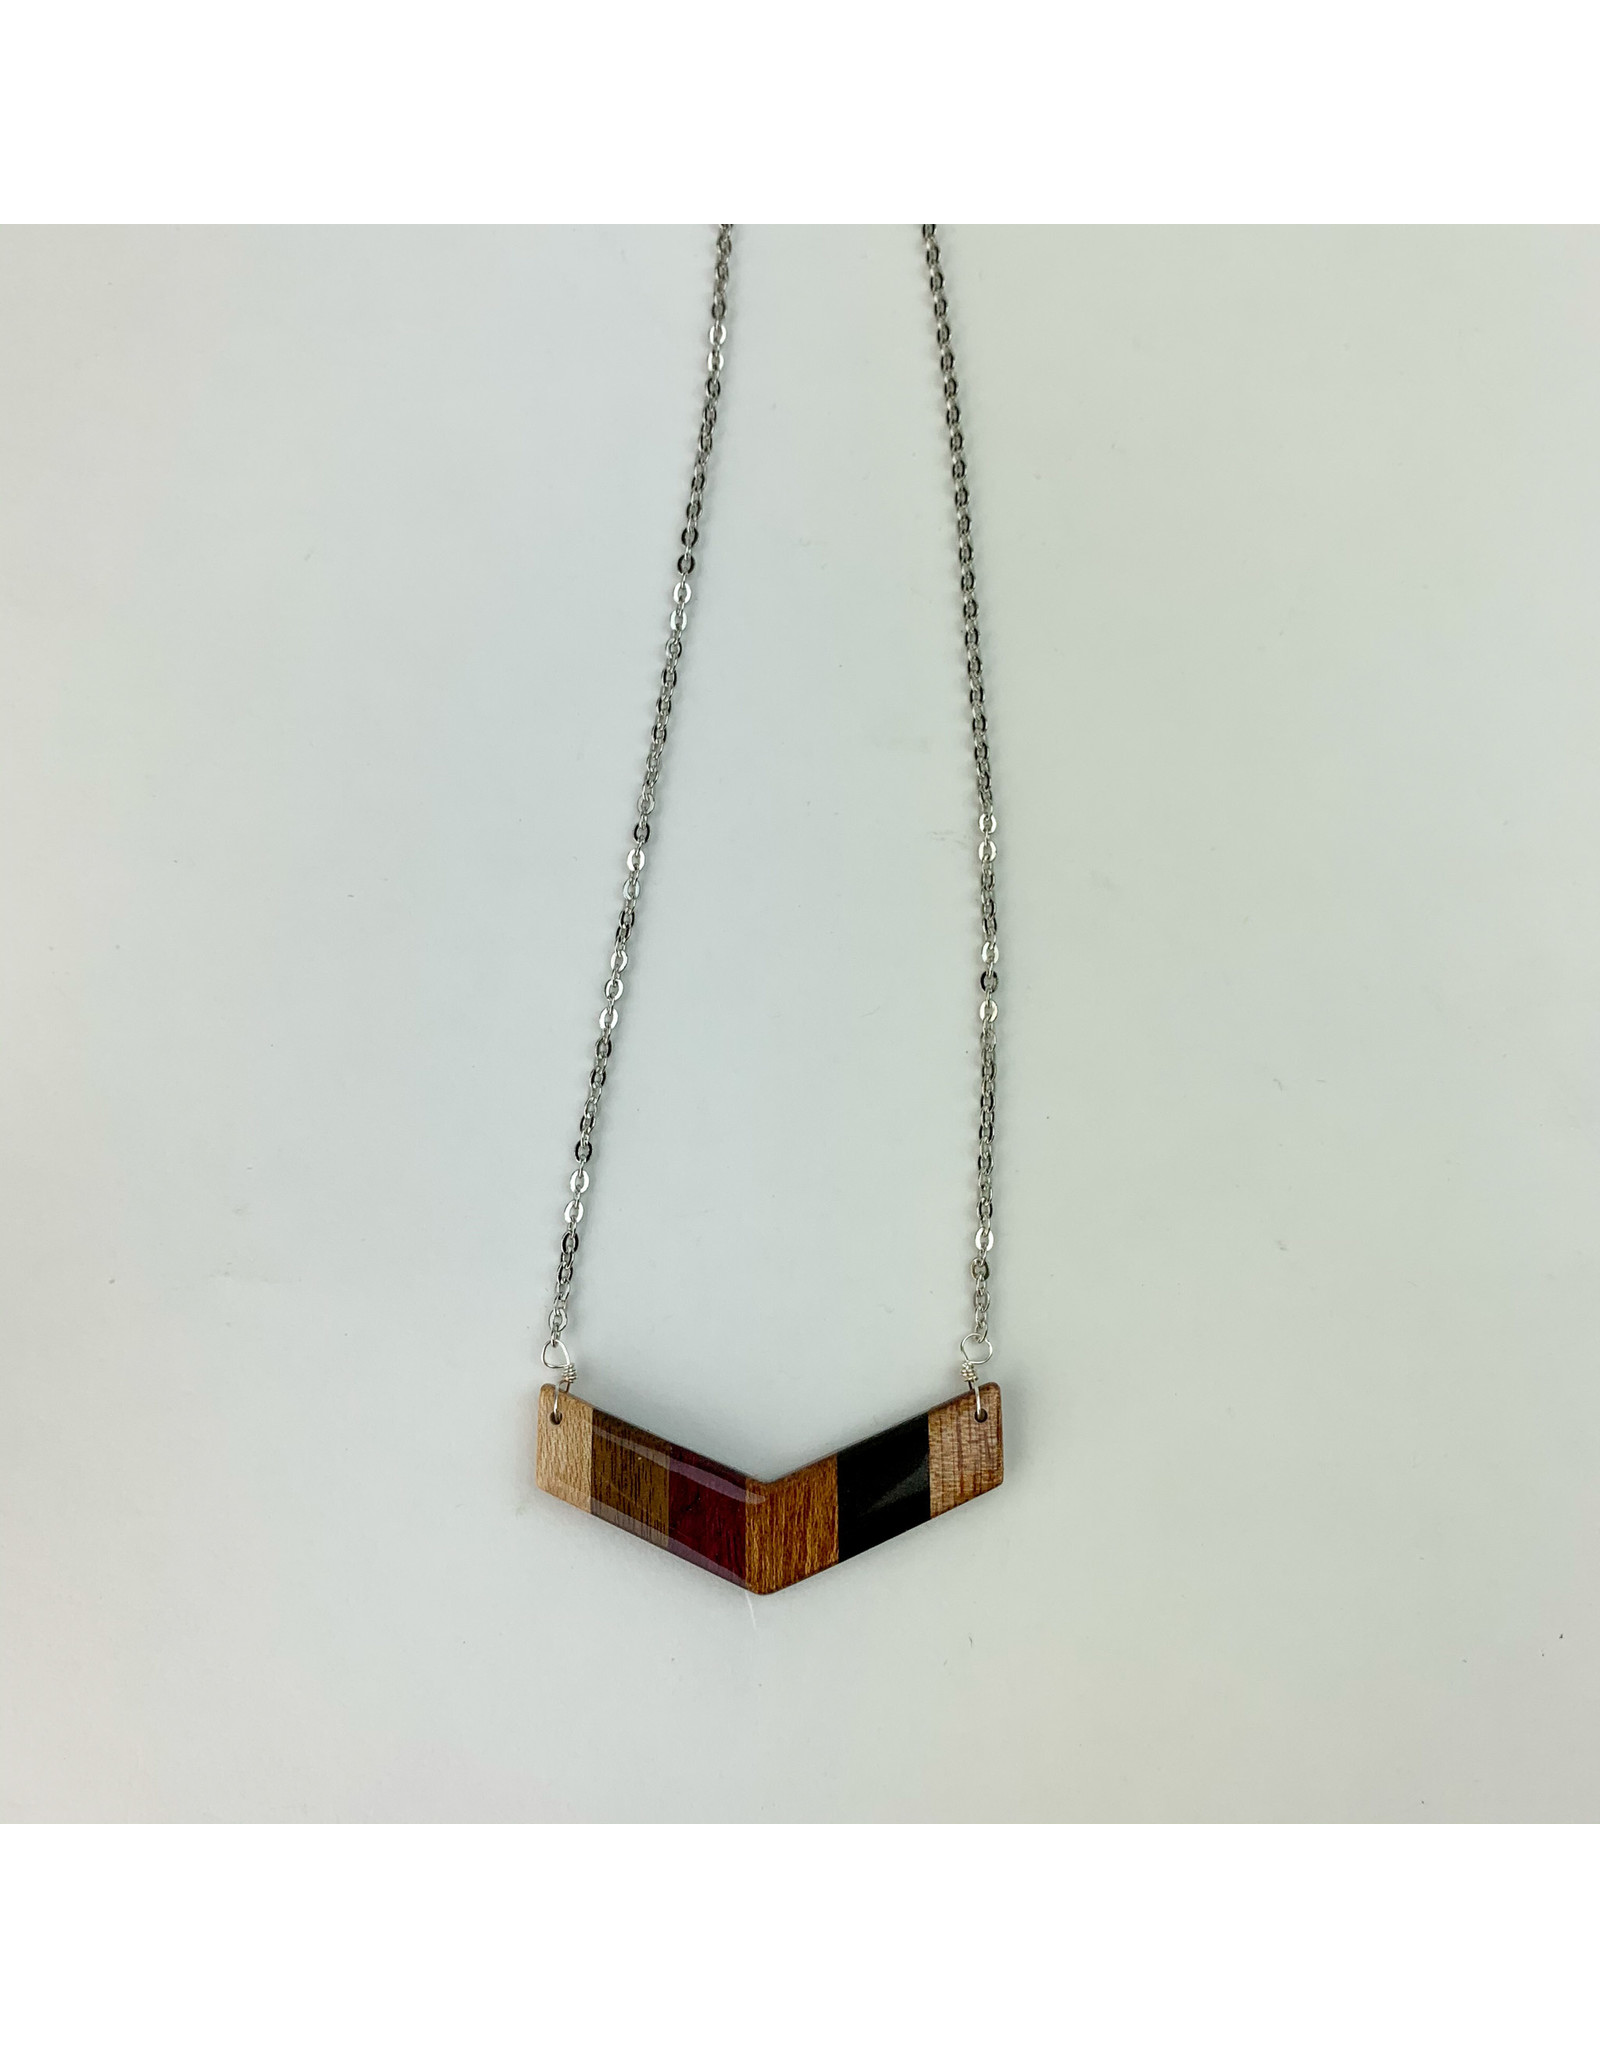 Melinda Wolff-consignment N5-L Wood Necklace: Chevron